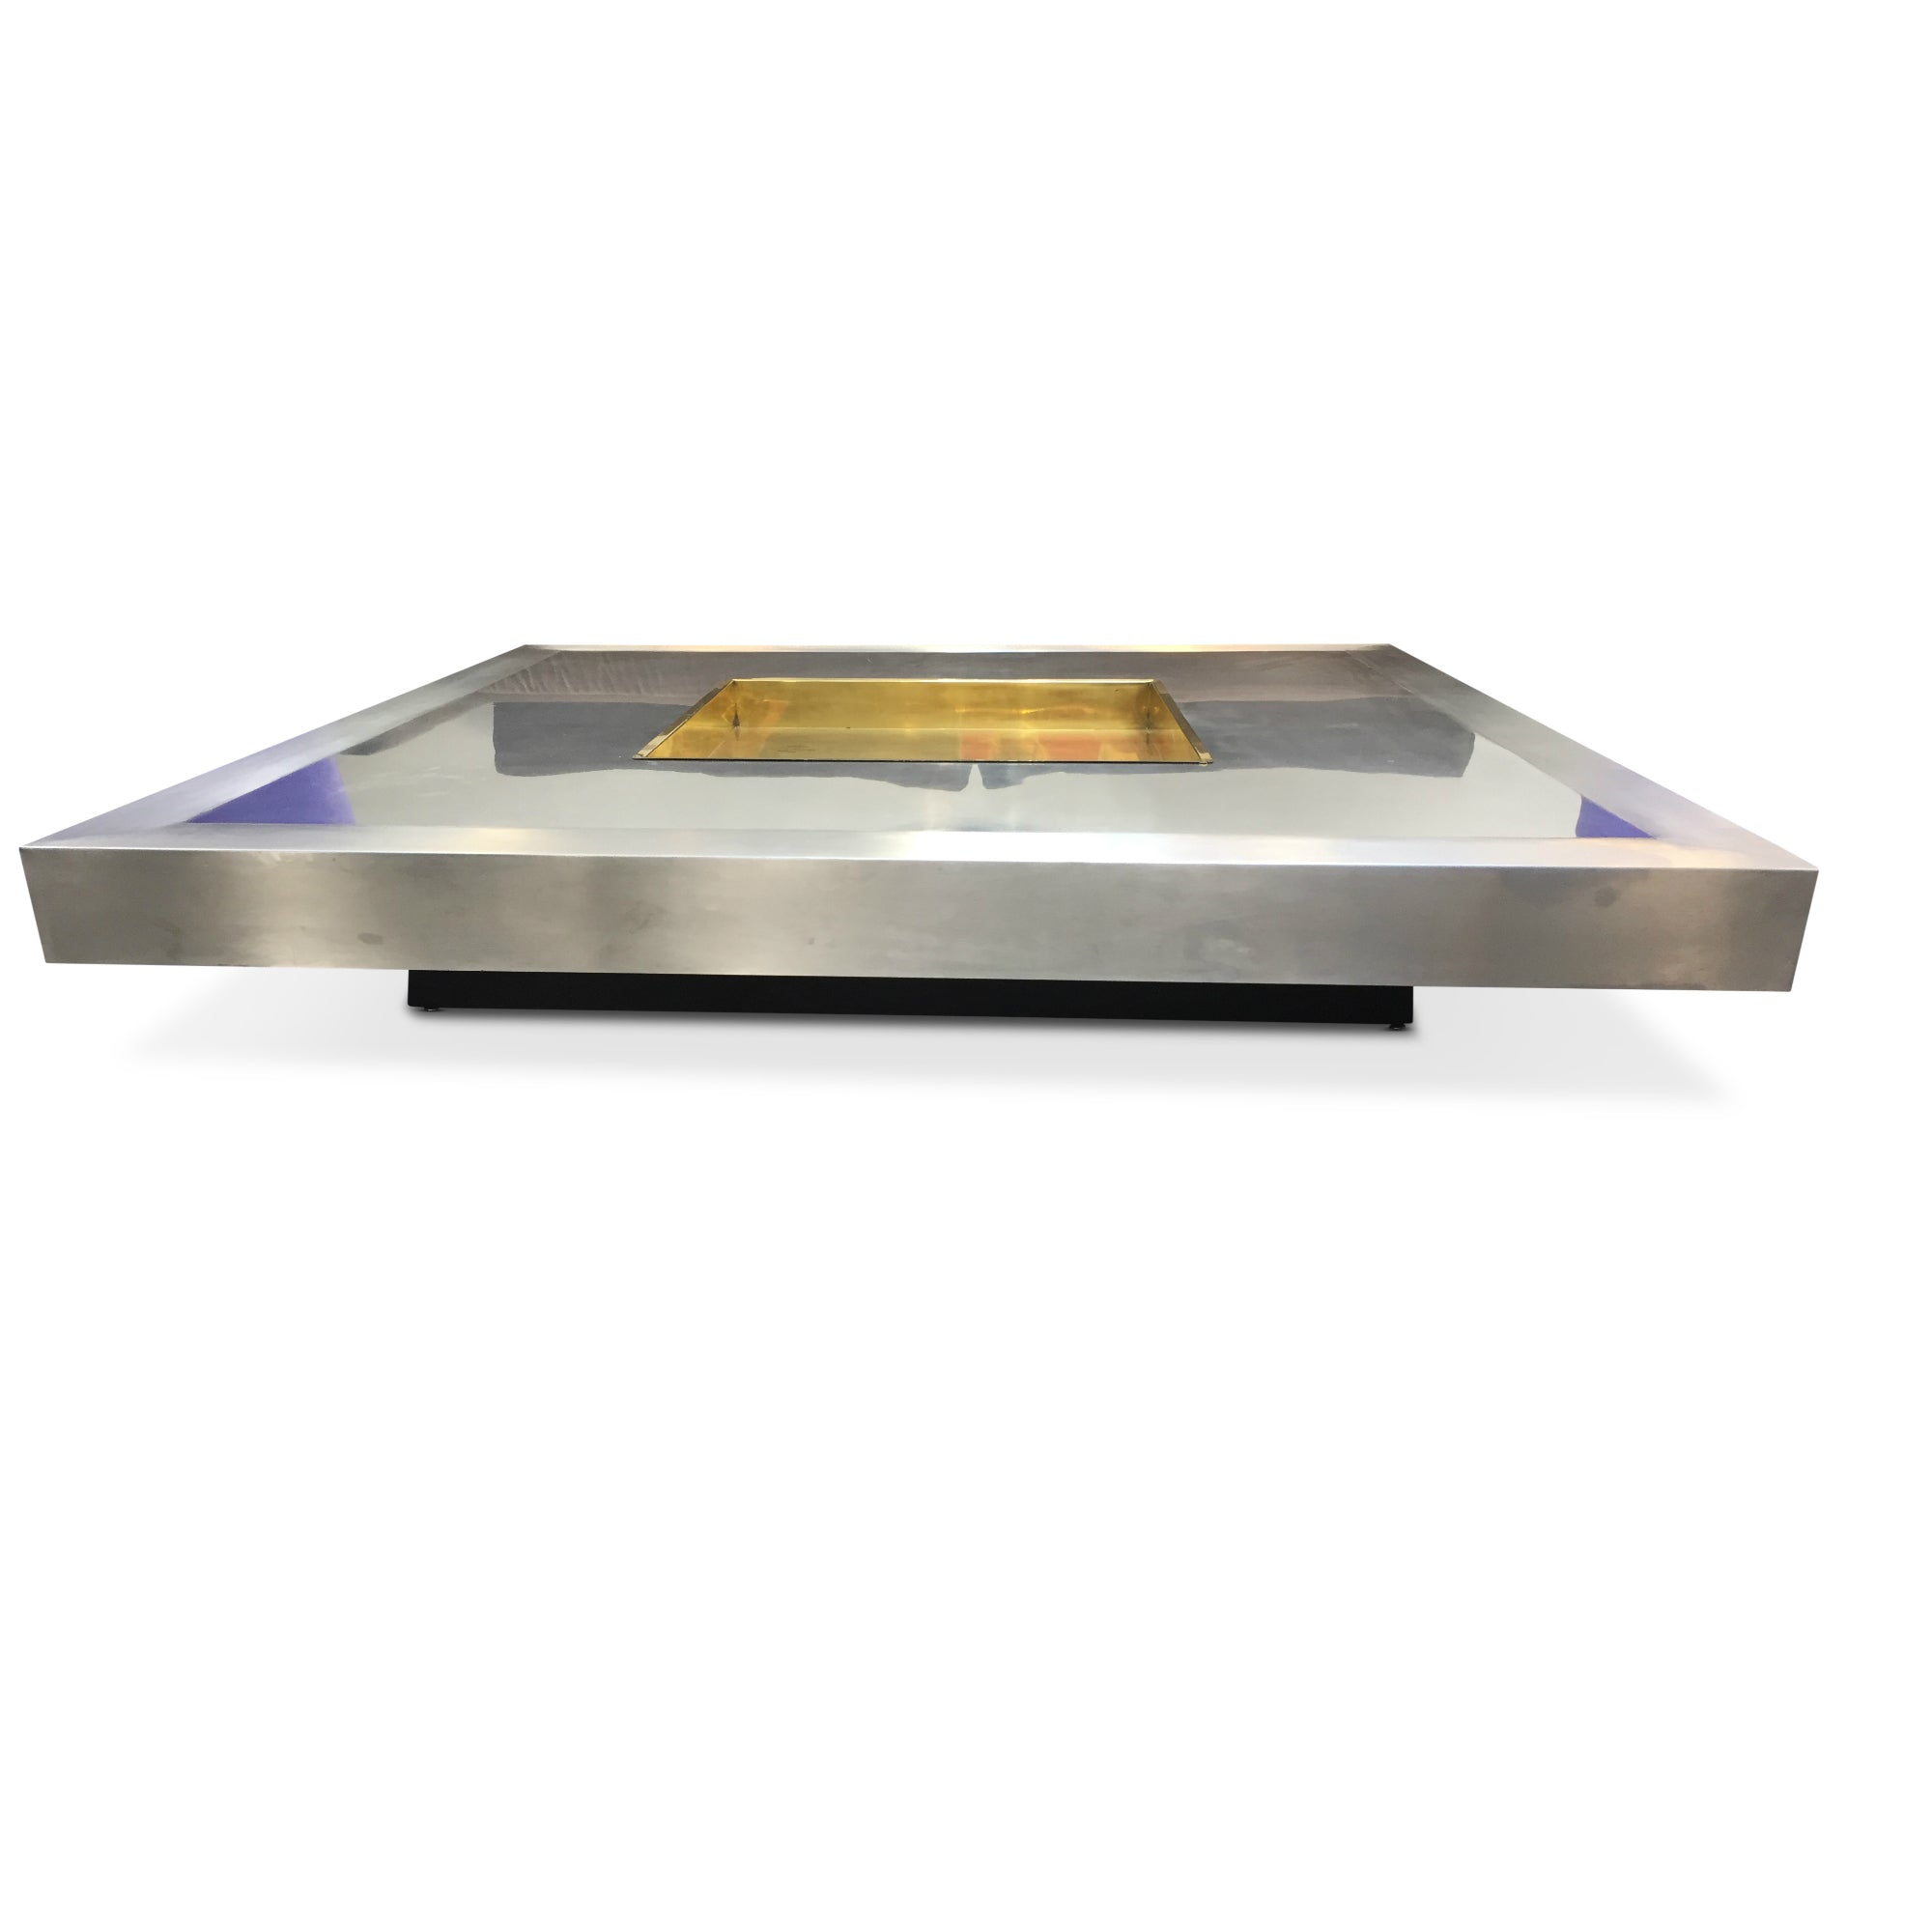 French Steel Coffee Table with Brass Tray Insert